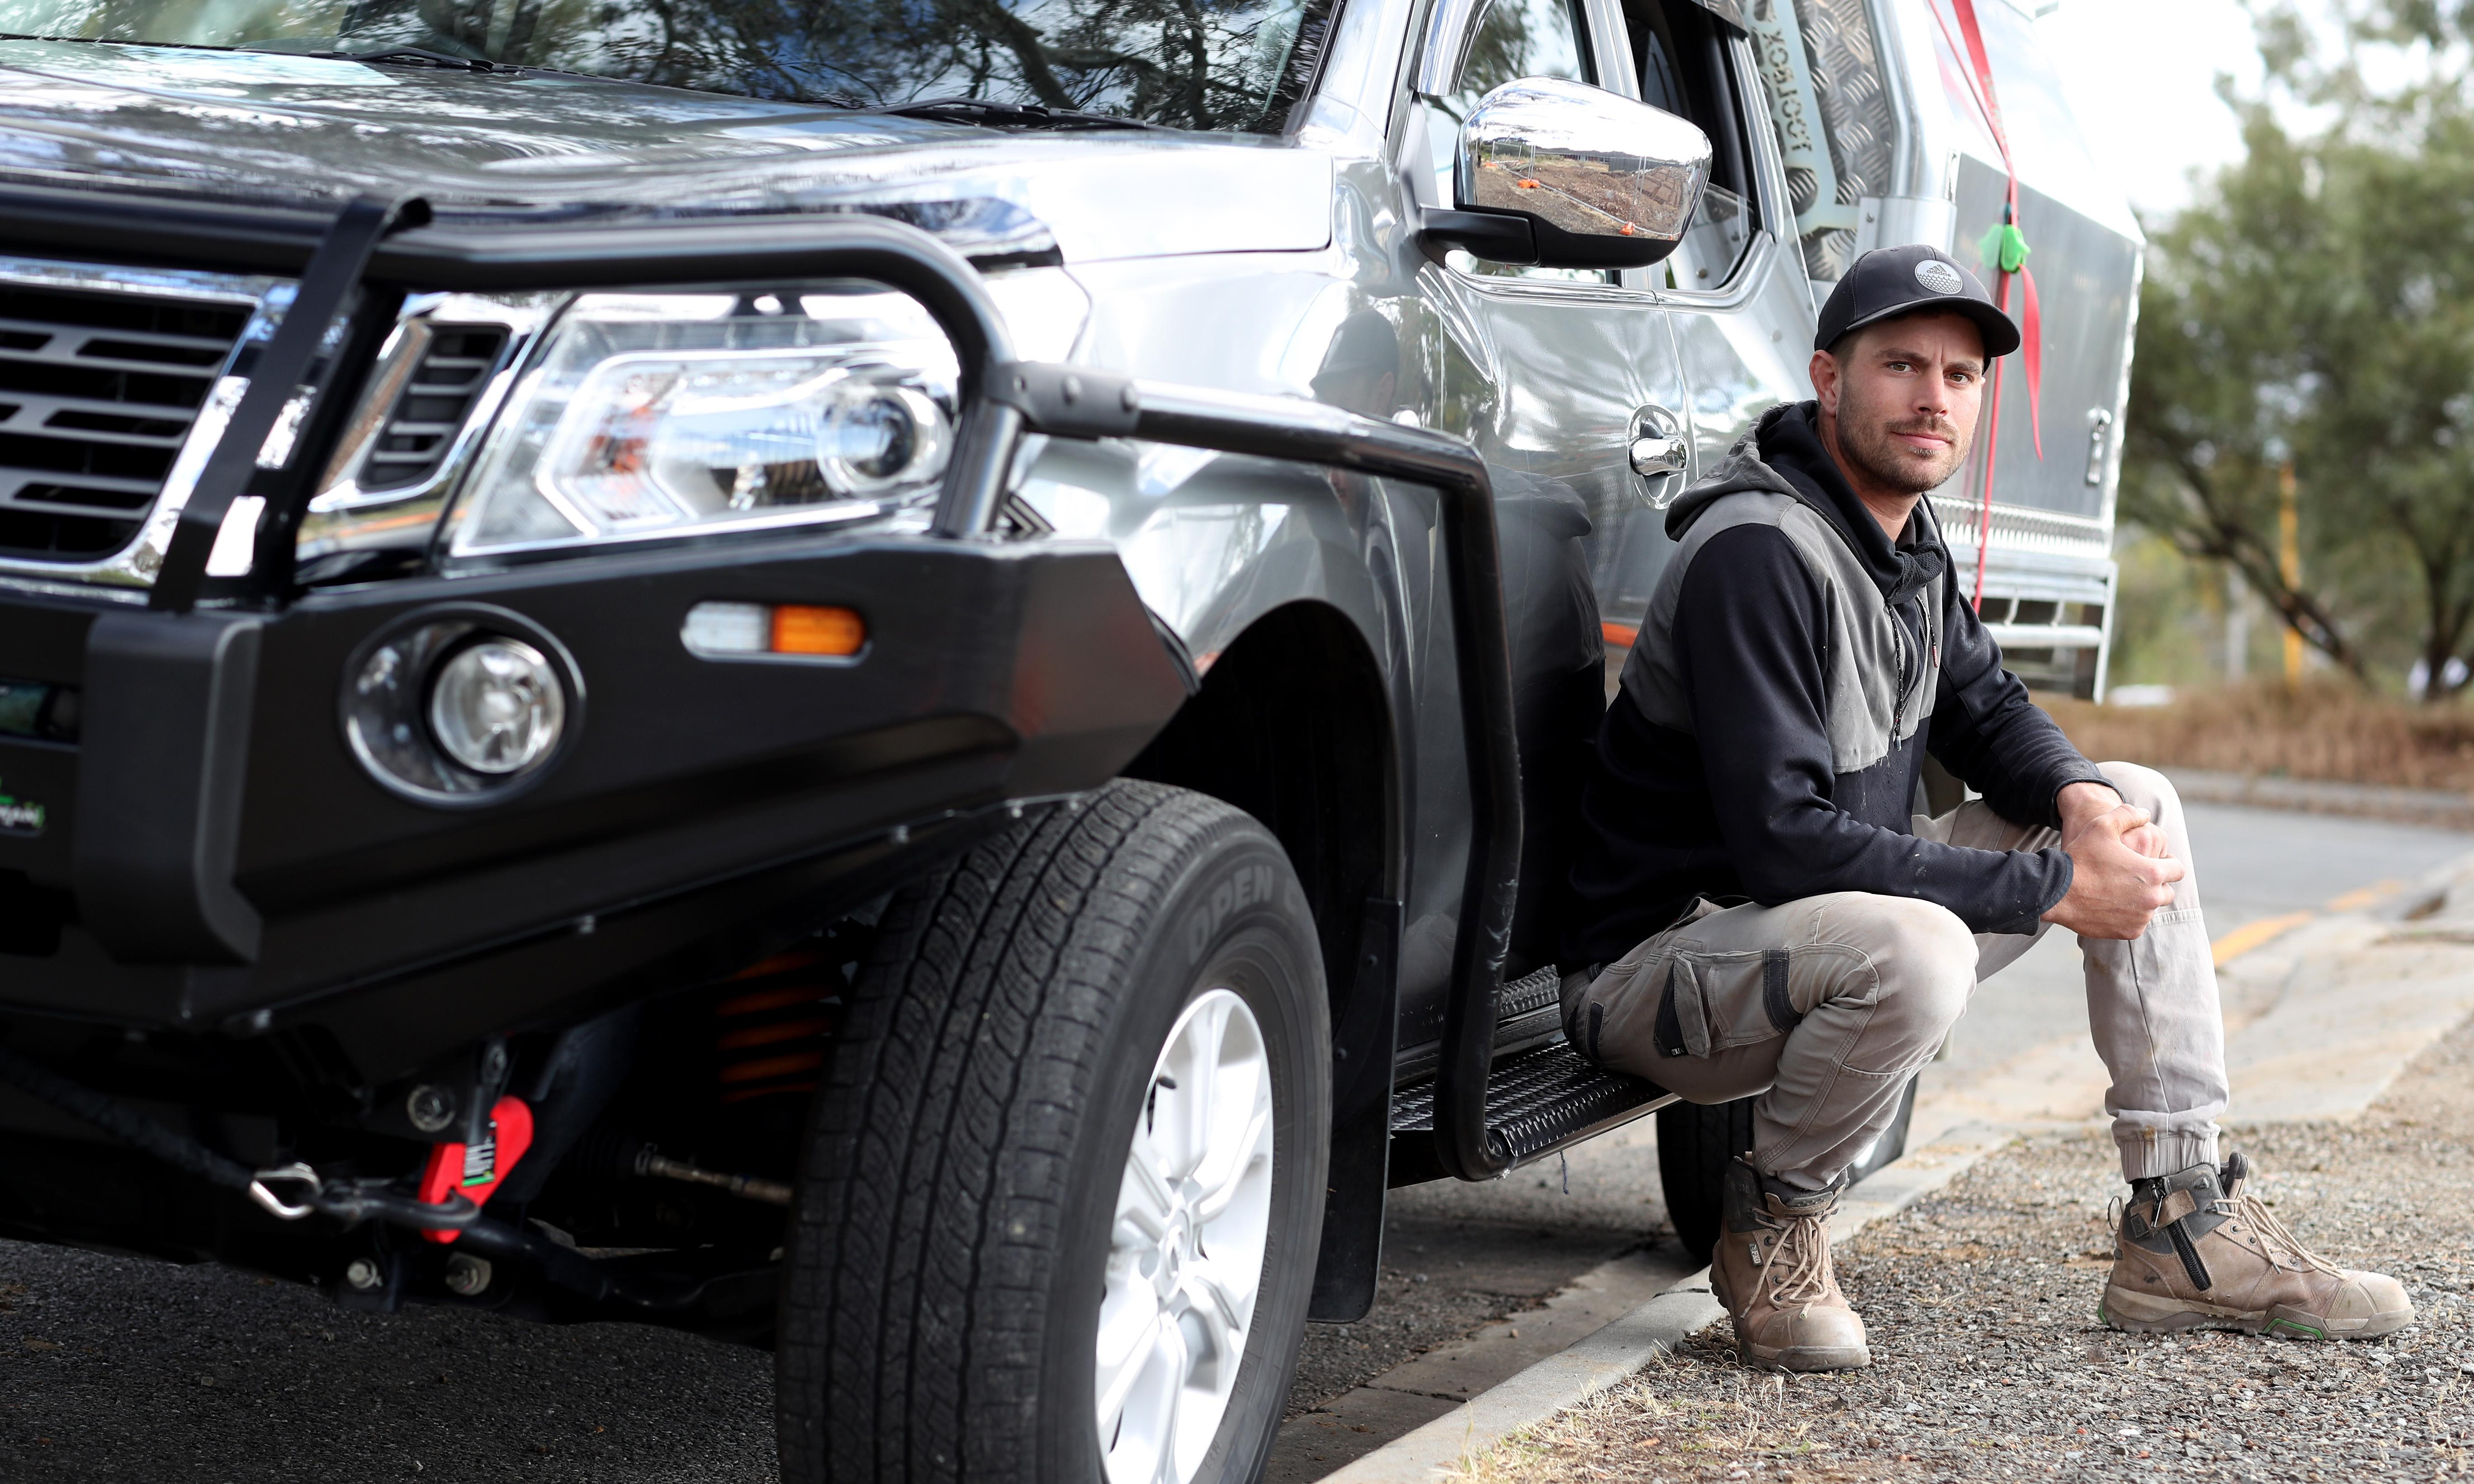 Wrong turn: why Australia's vehicle emissions are rising